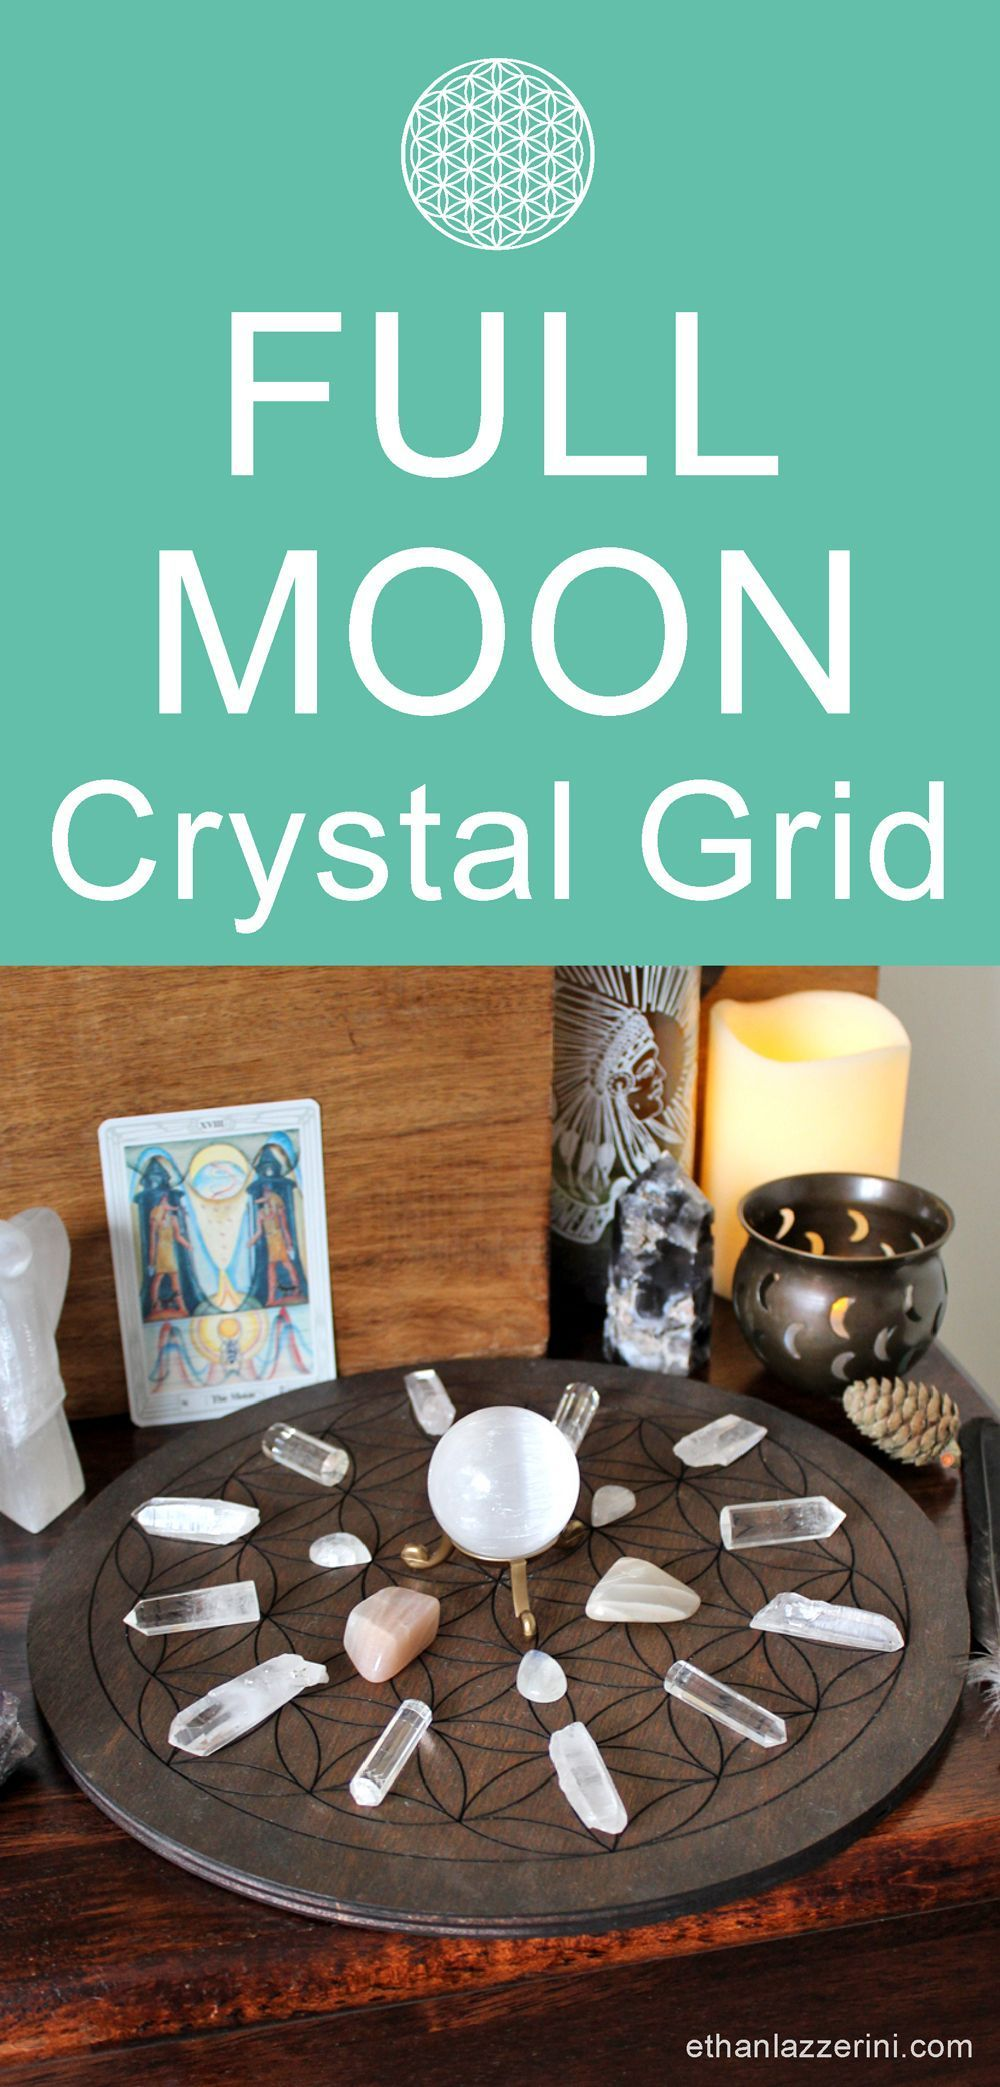 Full Moon Crystal Grid plus Gratitude Ritual #newmoonritual Full Moon Crystal Grid - Full Moon gratitude ritual with Moonstone #newmoonritual Full Moon Crystal Grid plus Gratitude Ritual #newmoonritual Full Moon Crystal Grid - Full Moon gratitude ritual with Moonstone #newmoonritual